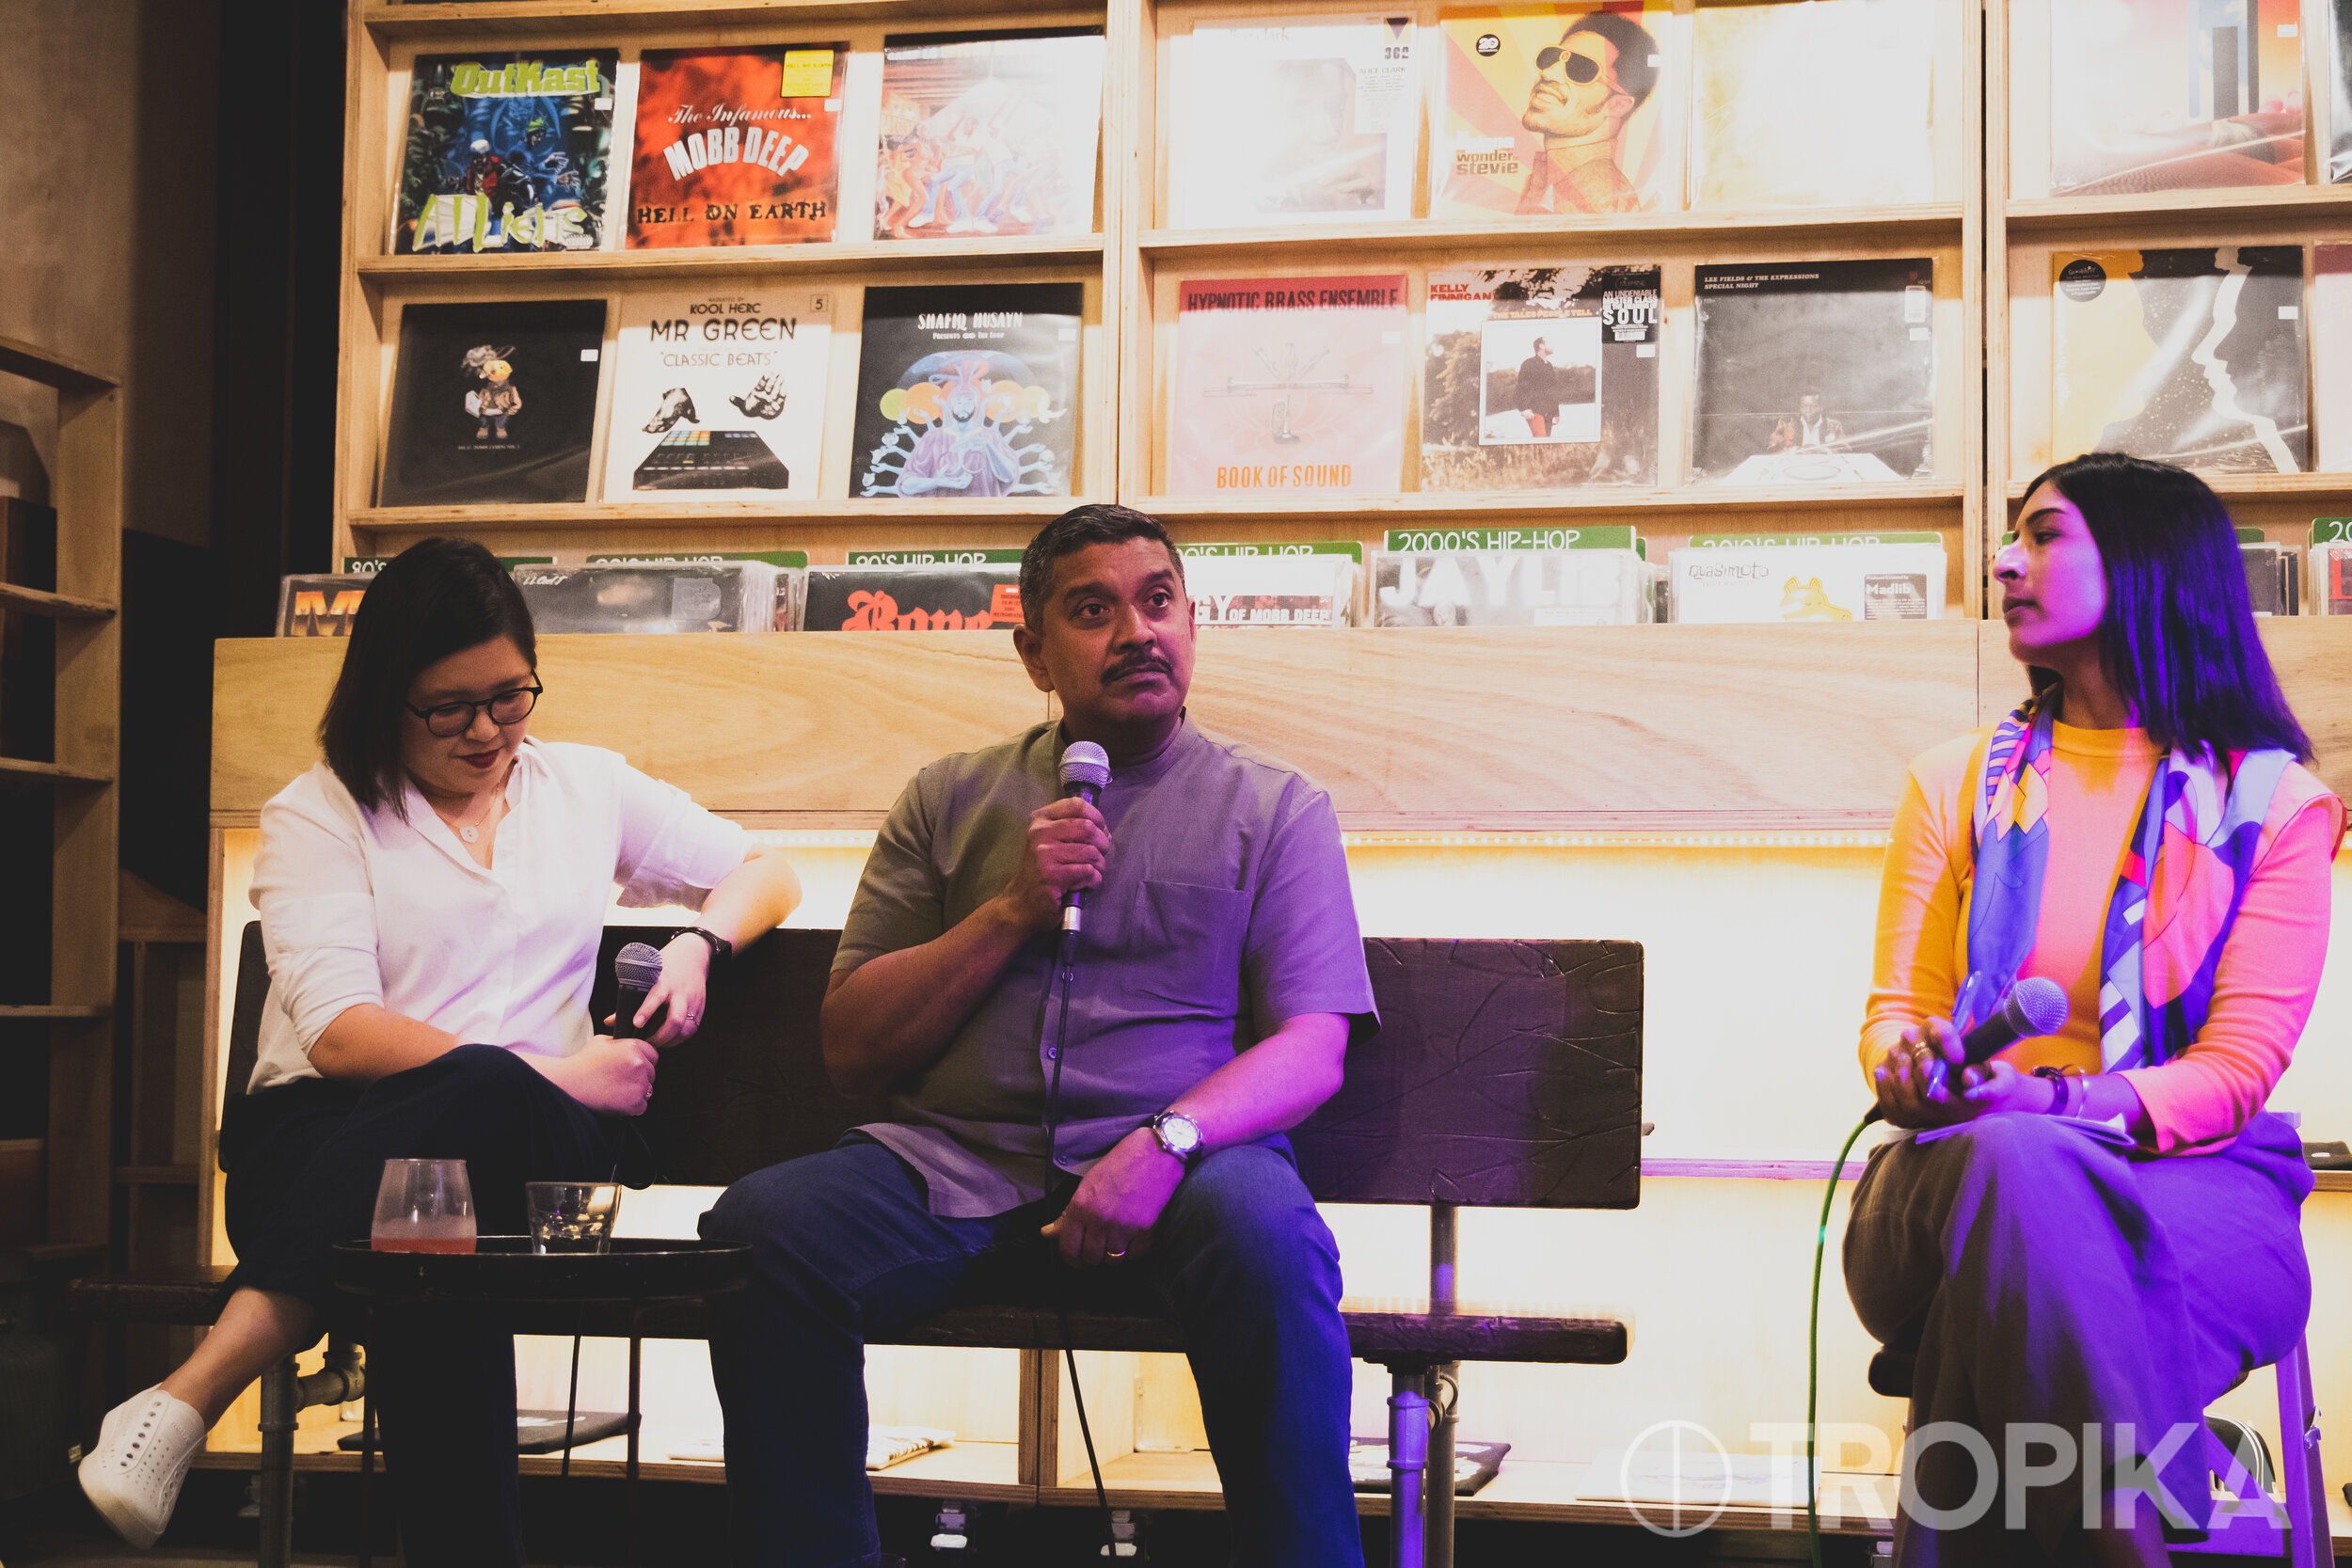 August 2019: Singaporean human rights advocate Kirsten Han and Viswa Sadasivan, a former member of Singapore parliament, discussing political protests in Asia